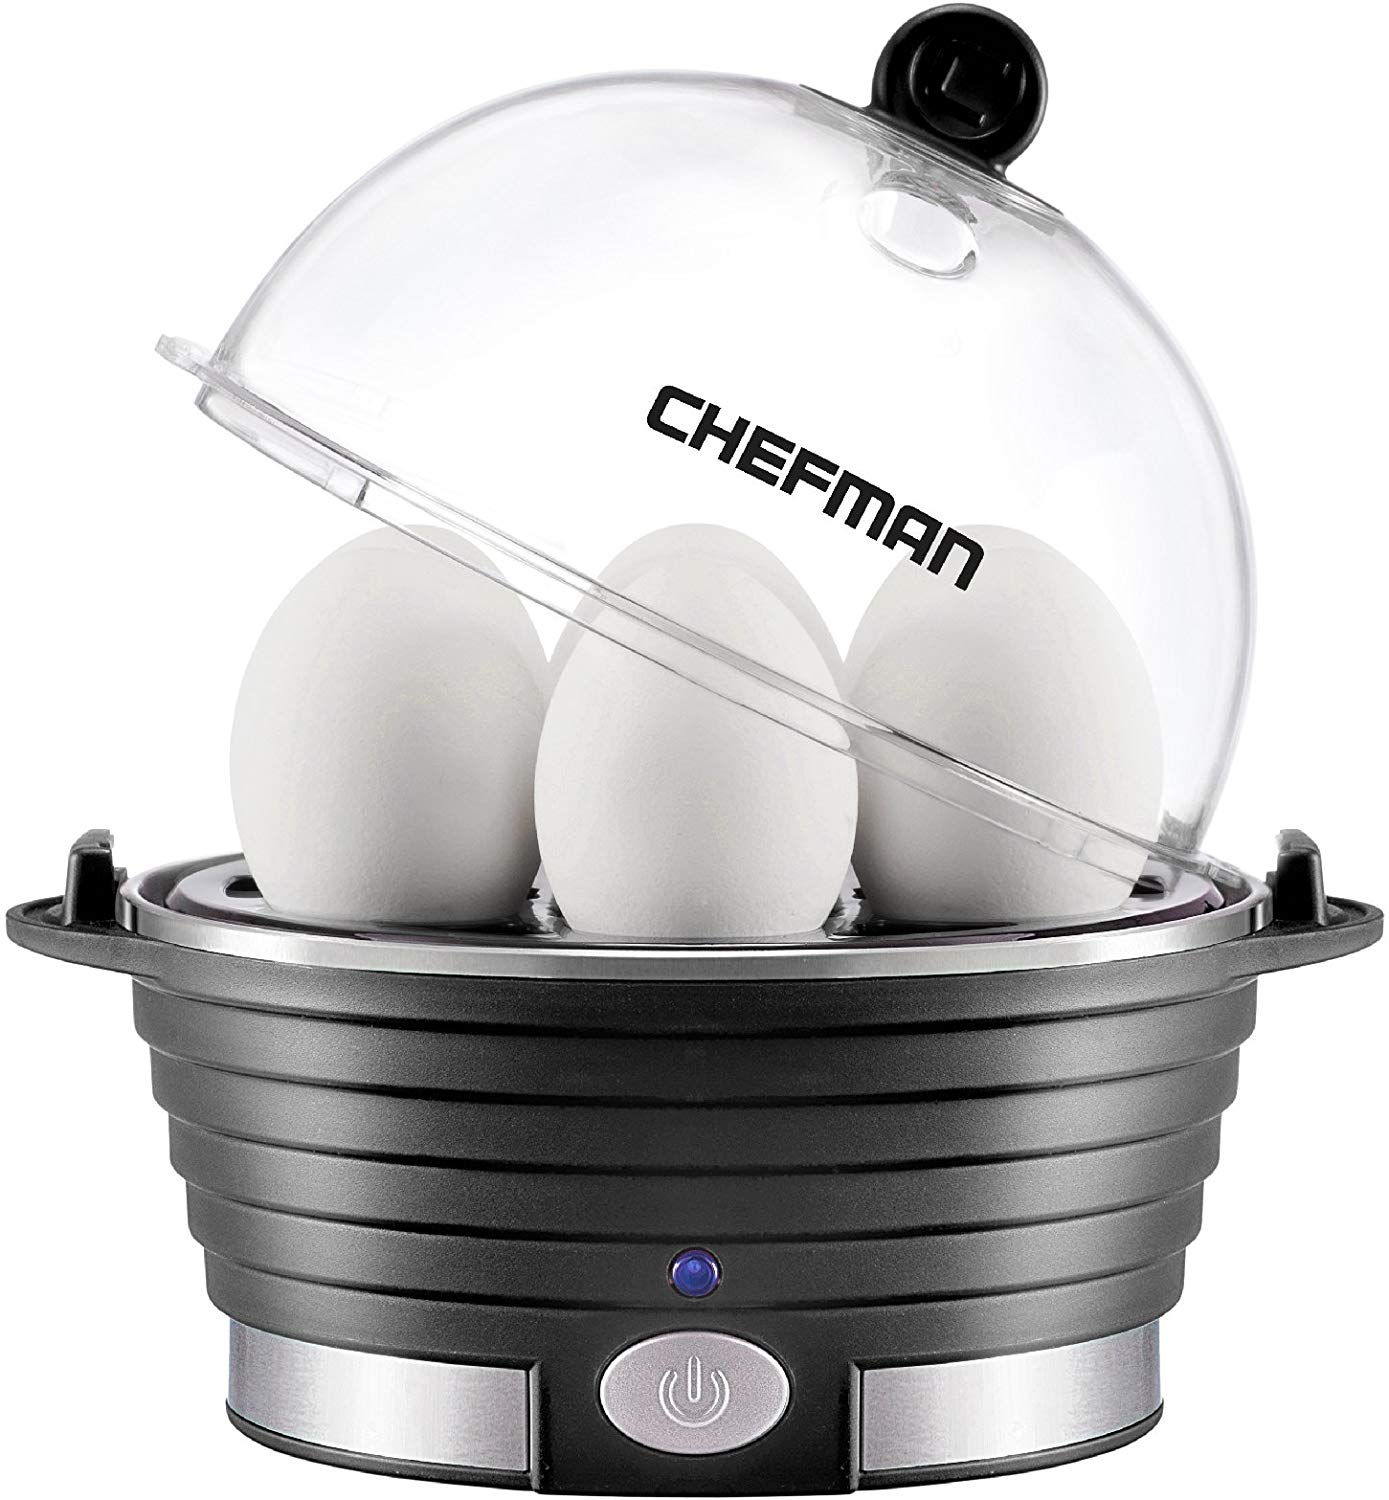 Chefman Electric Egg Cooker Boiler, Rapid Egg-Maker & Poacher, Food & Vegetable Steamer, Quickly Makes 6 Eggs, Hard, Medium or Soft Boiled, Poaching/Omelet Tray Included, Ready Signal, BPA-Free, Black